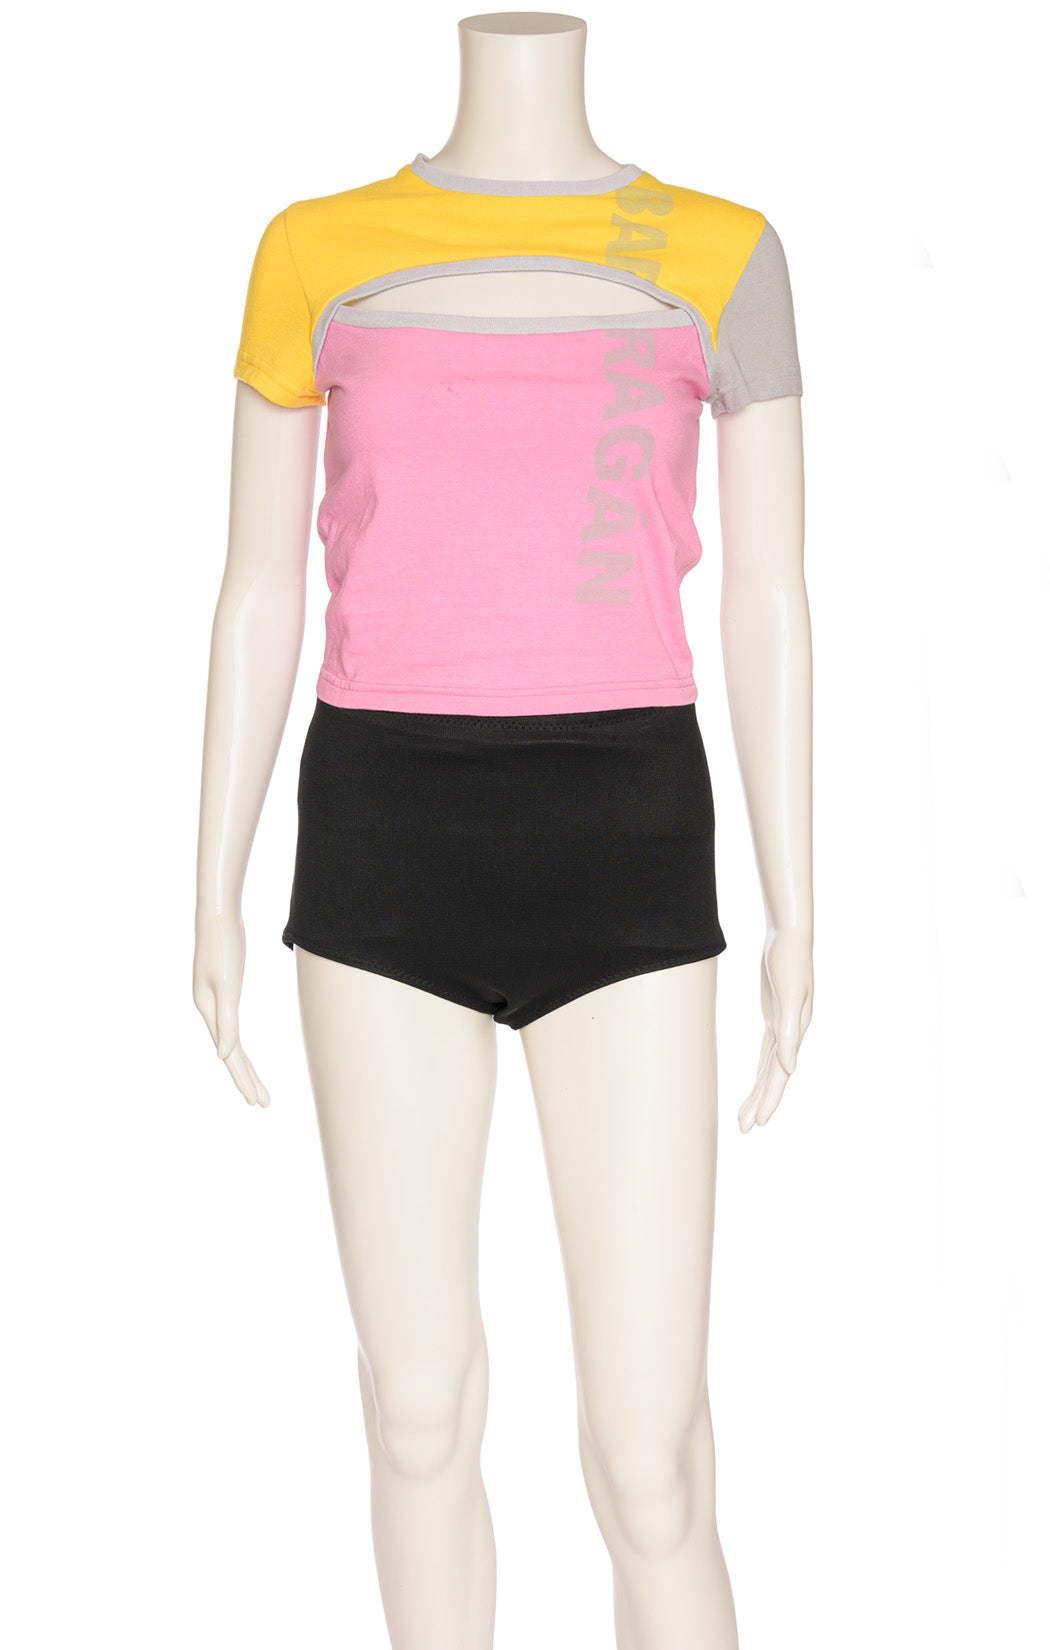 Yellow gray and pink shirt sleeve t-shirt with open bodice area front and back with writing on front